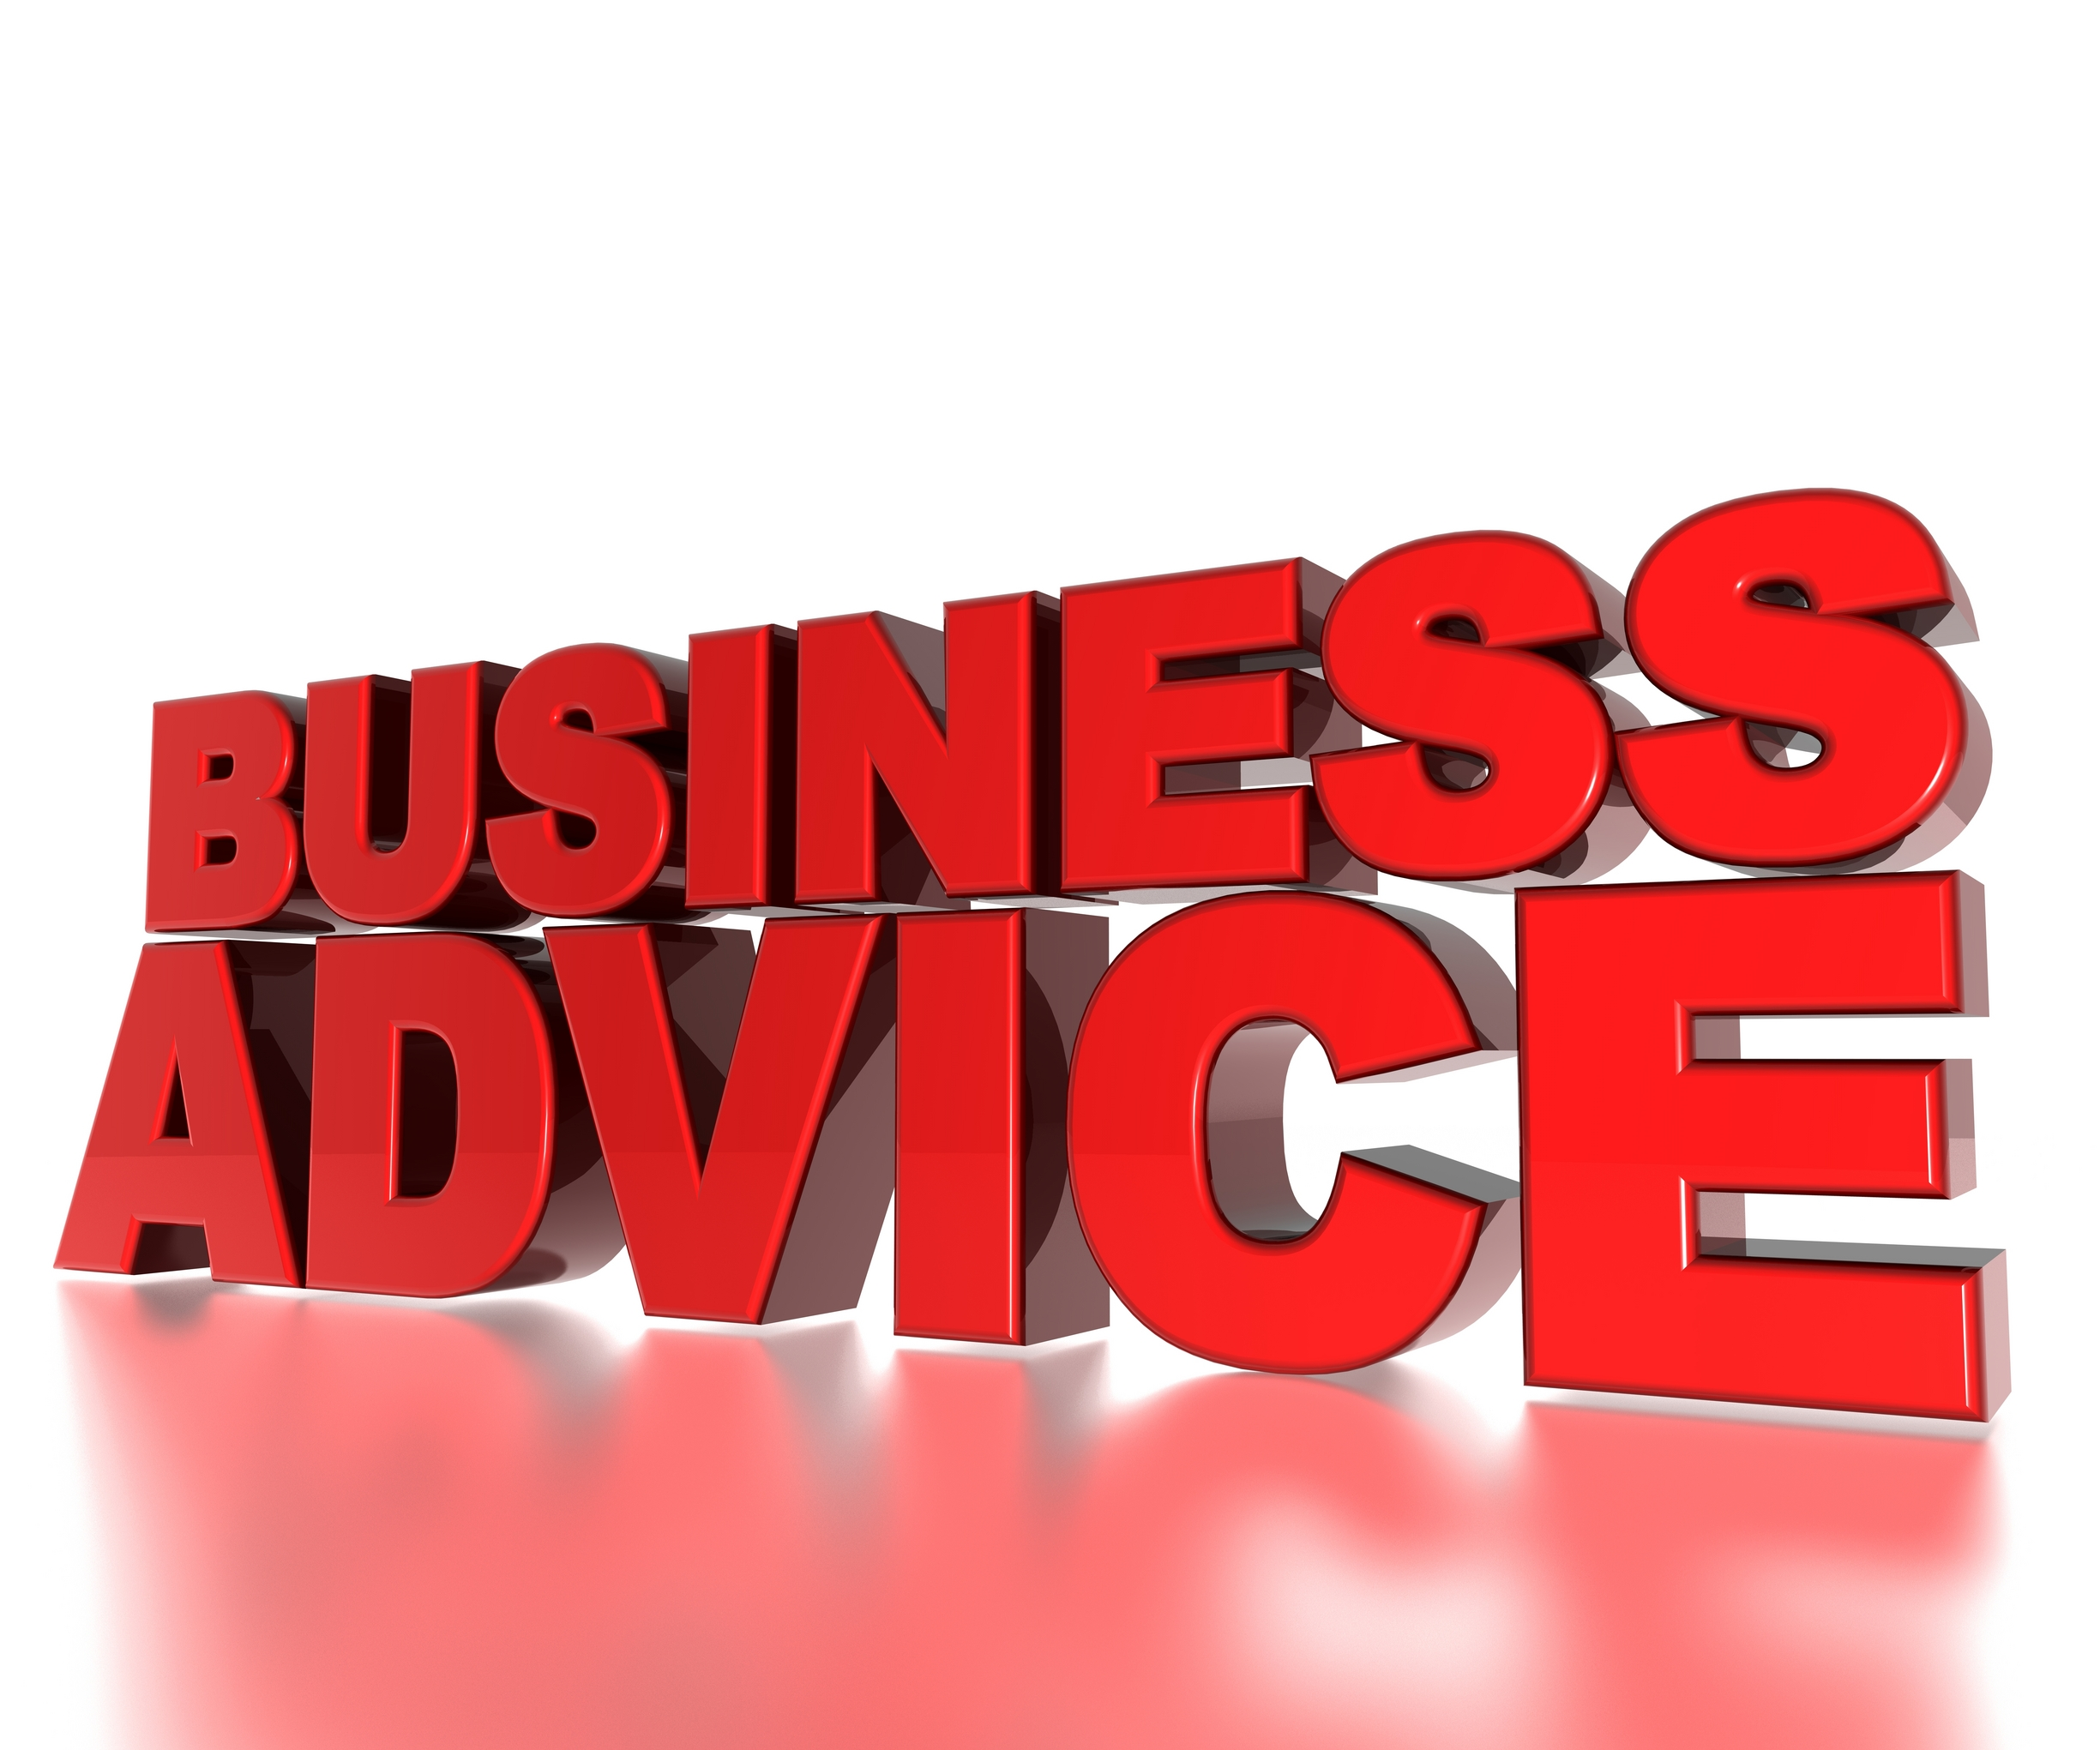 business-advice.jpg?1324988105